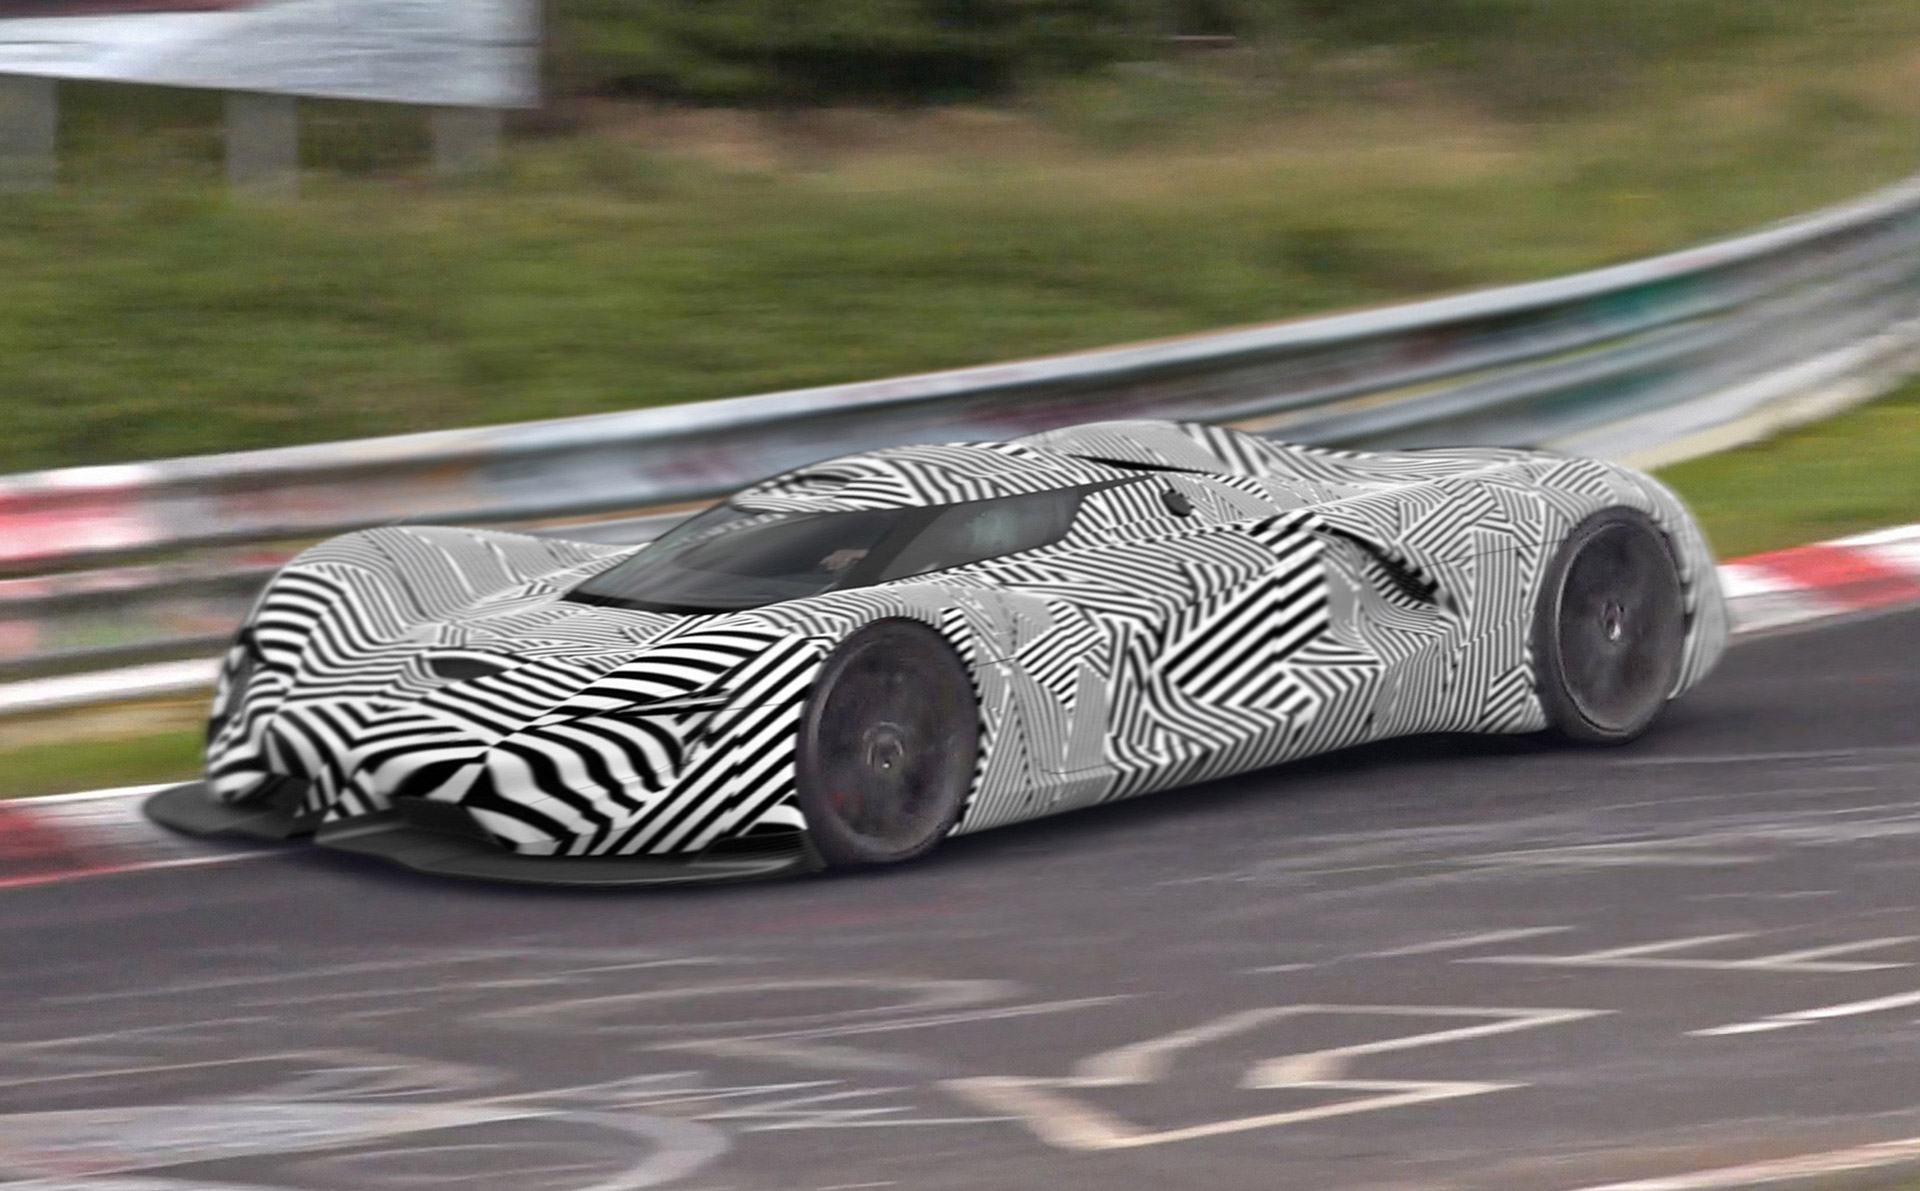 srt tomahawk vision gran turismo teased again ahead of. Black Bedroom Furniture Sets. Home Design Ideas